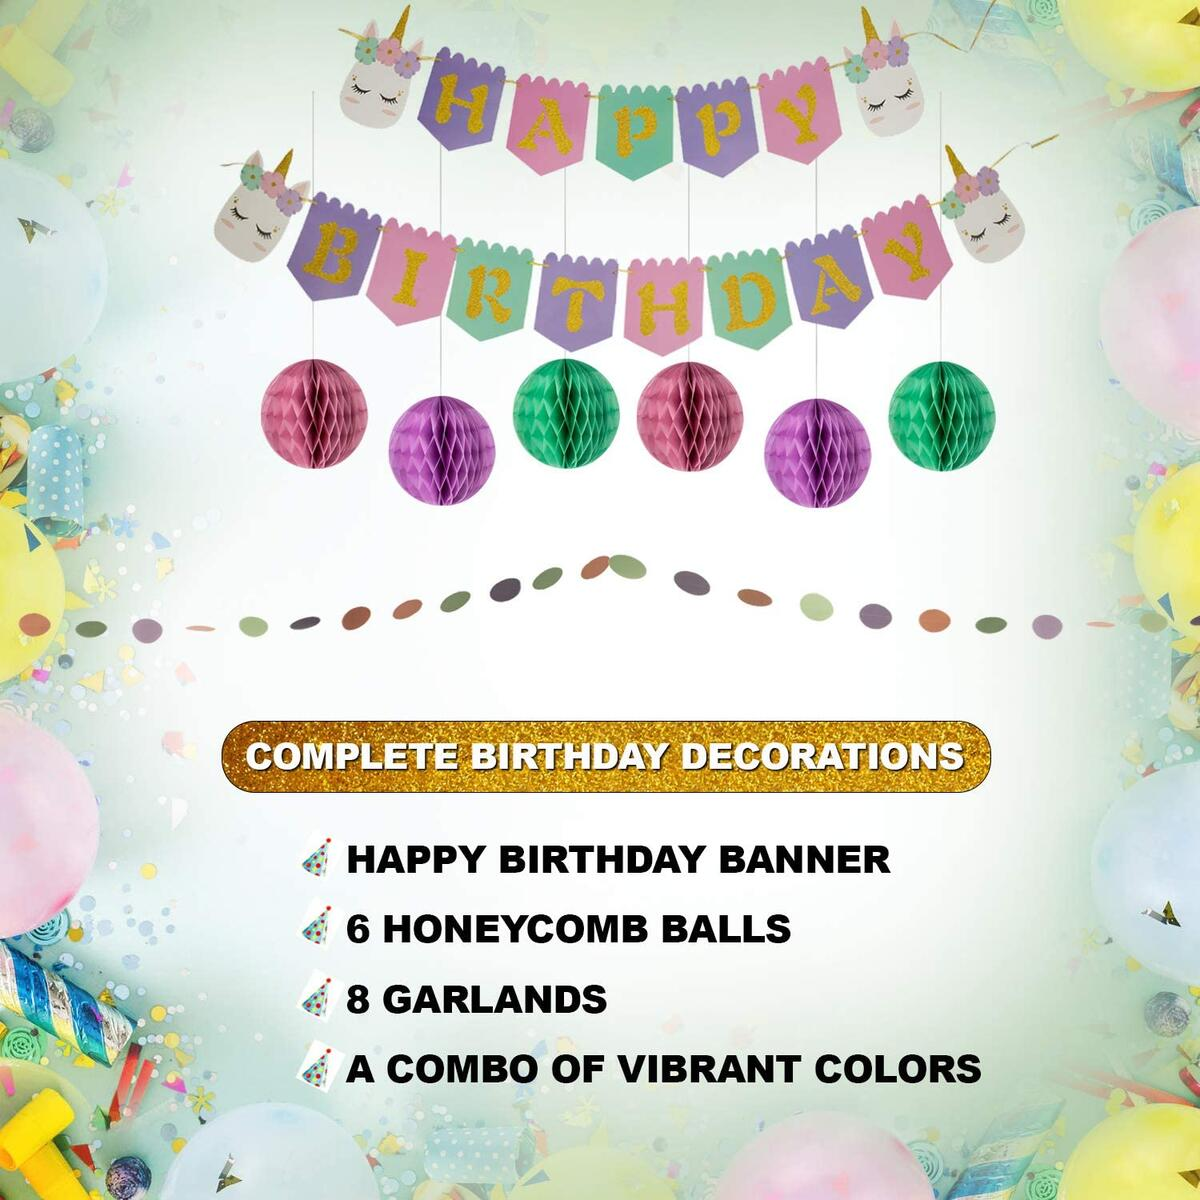 Artistrend Unicorn Happy Birthday Banner Set | Girls B-Day Party Decorations Backdrop with Colorful Sign Honeycomb Balls Swirls Streamers | Its Time for an Unforgettable Birthday Celebration